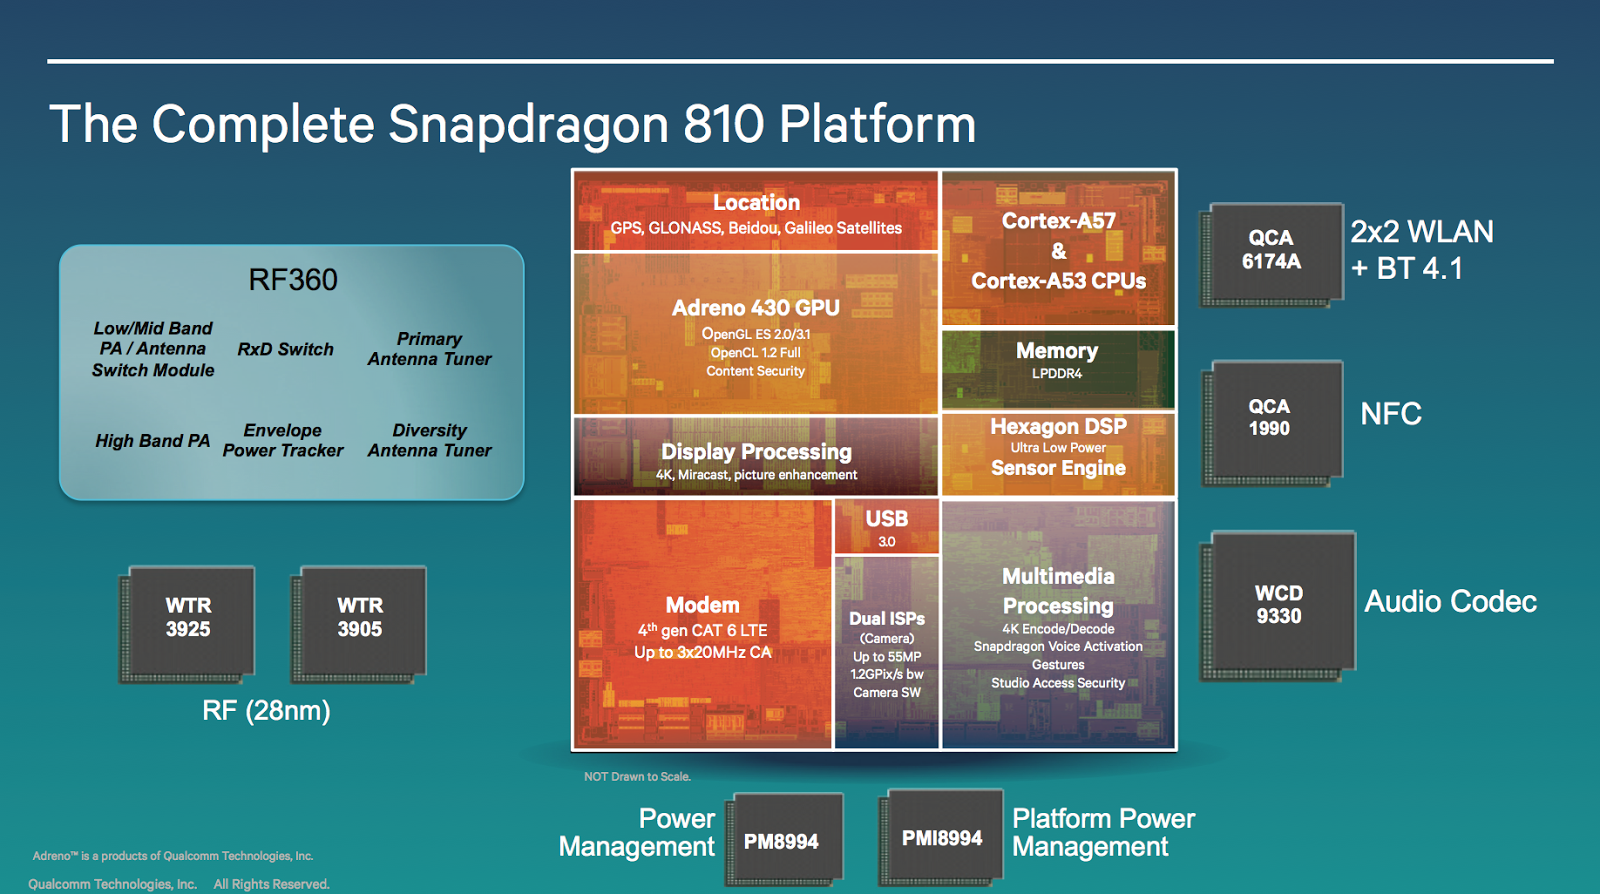 Qualcomm Announces The New Snapdragon 808 and 810 in 64-Bit… 2015